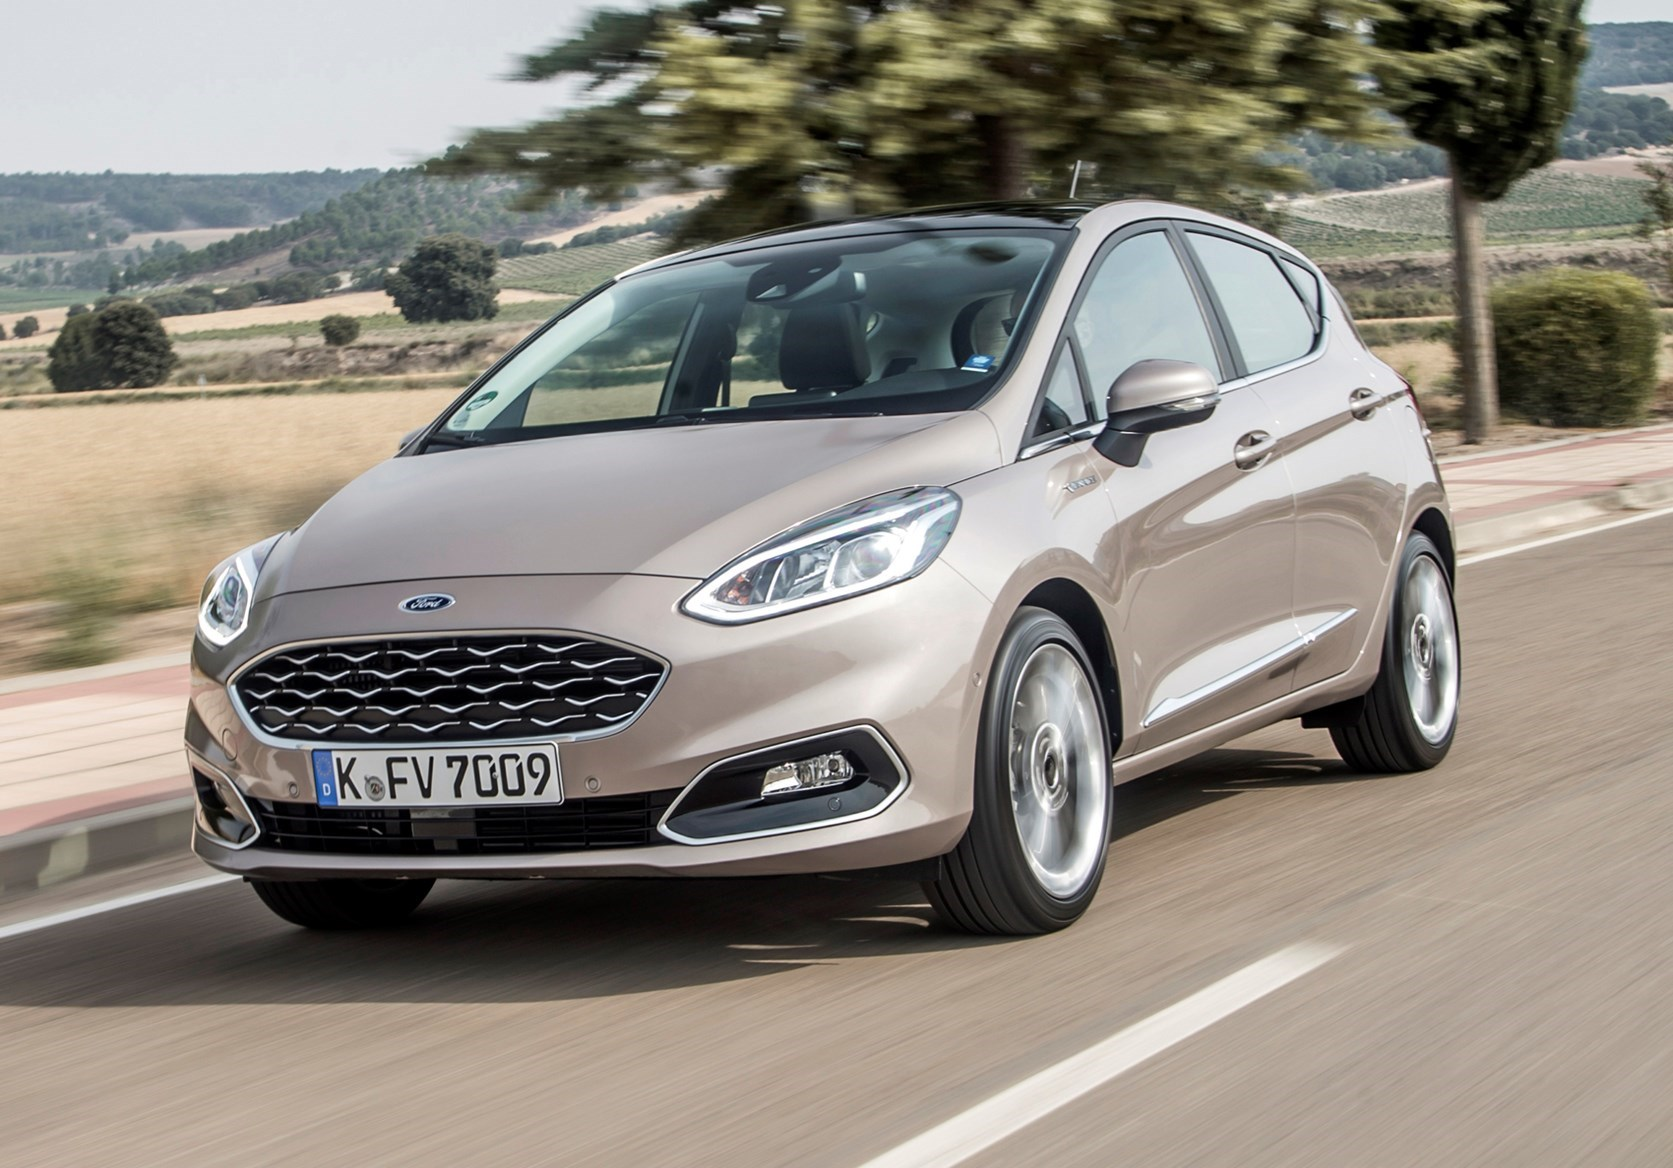 Ford Fiesta Vignale: this or a DS3, Mini or VW Polo?